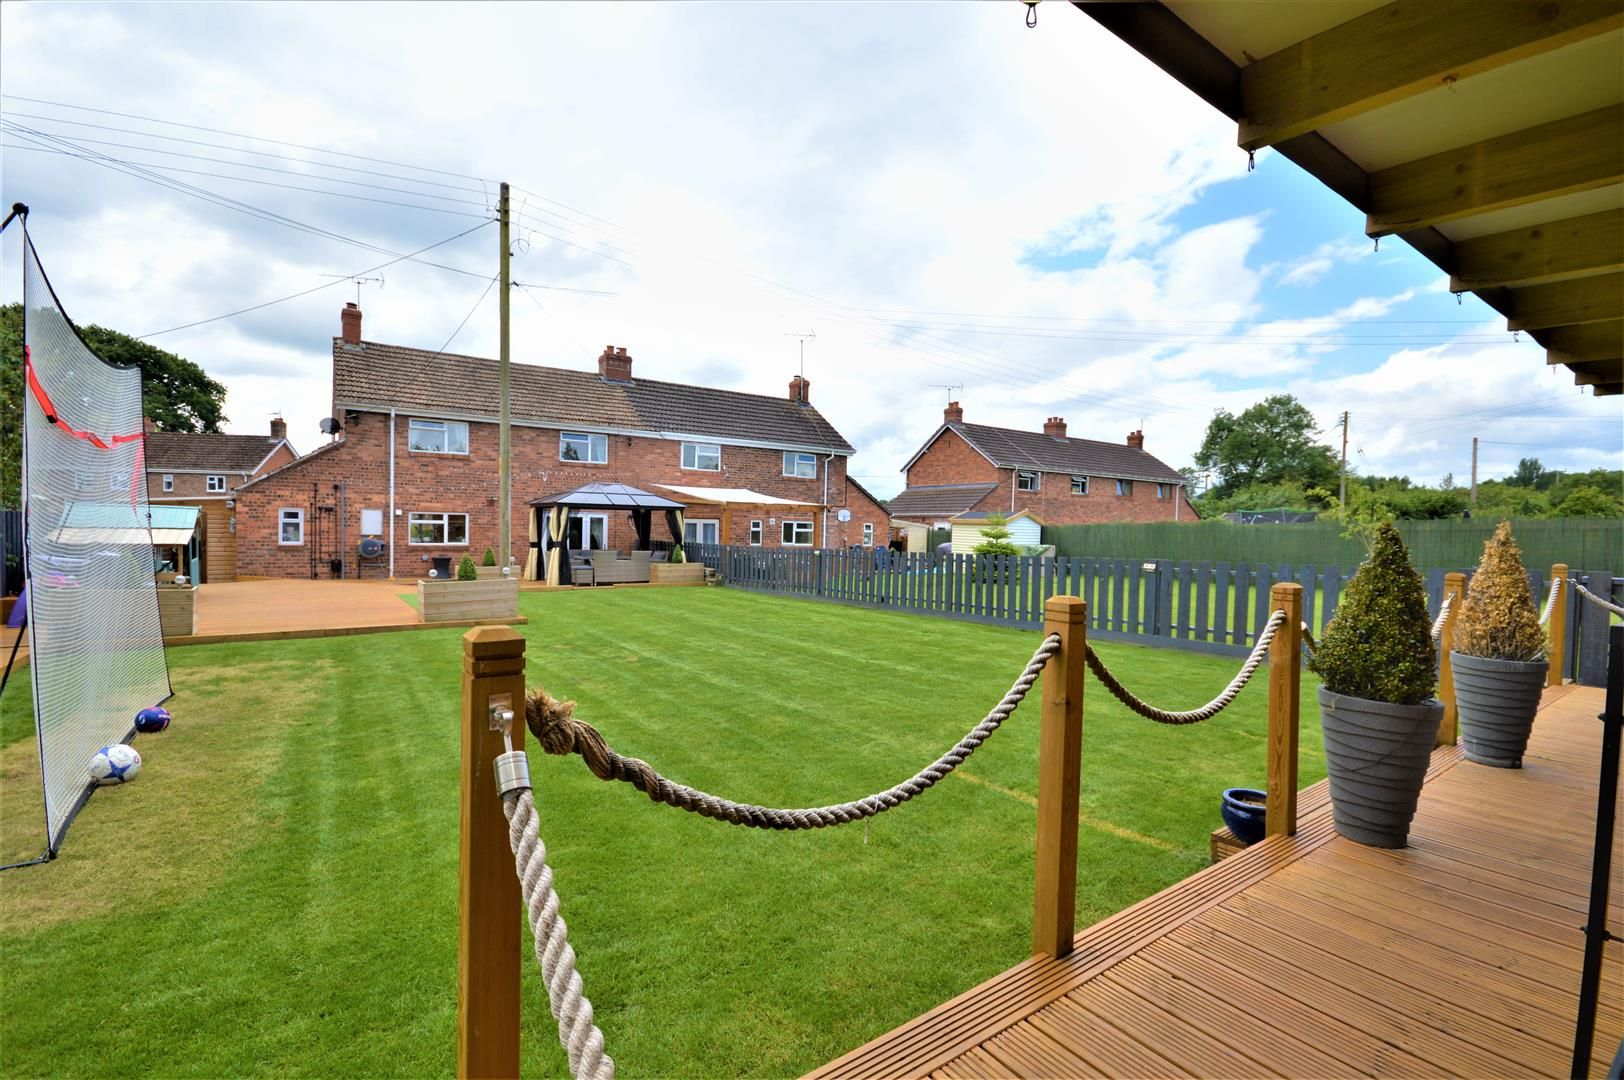 3 bed semi-detached for sale in Eardisley, HR3